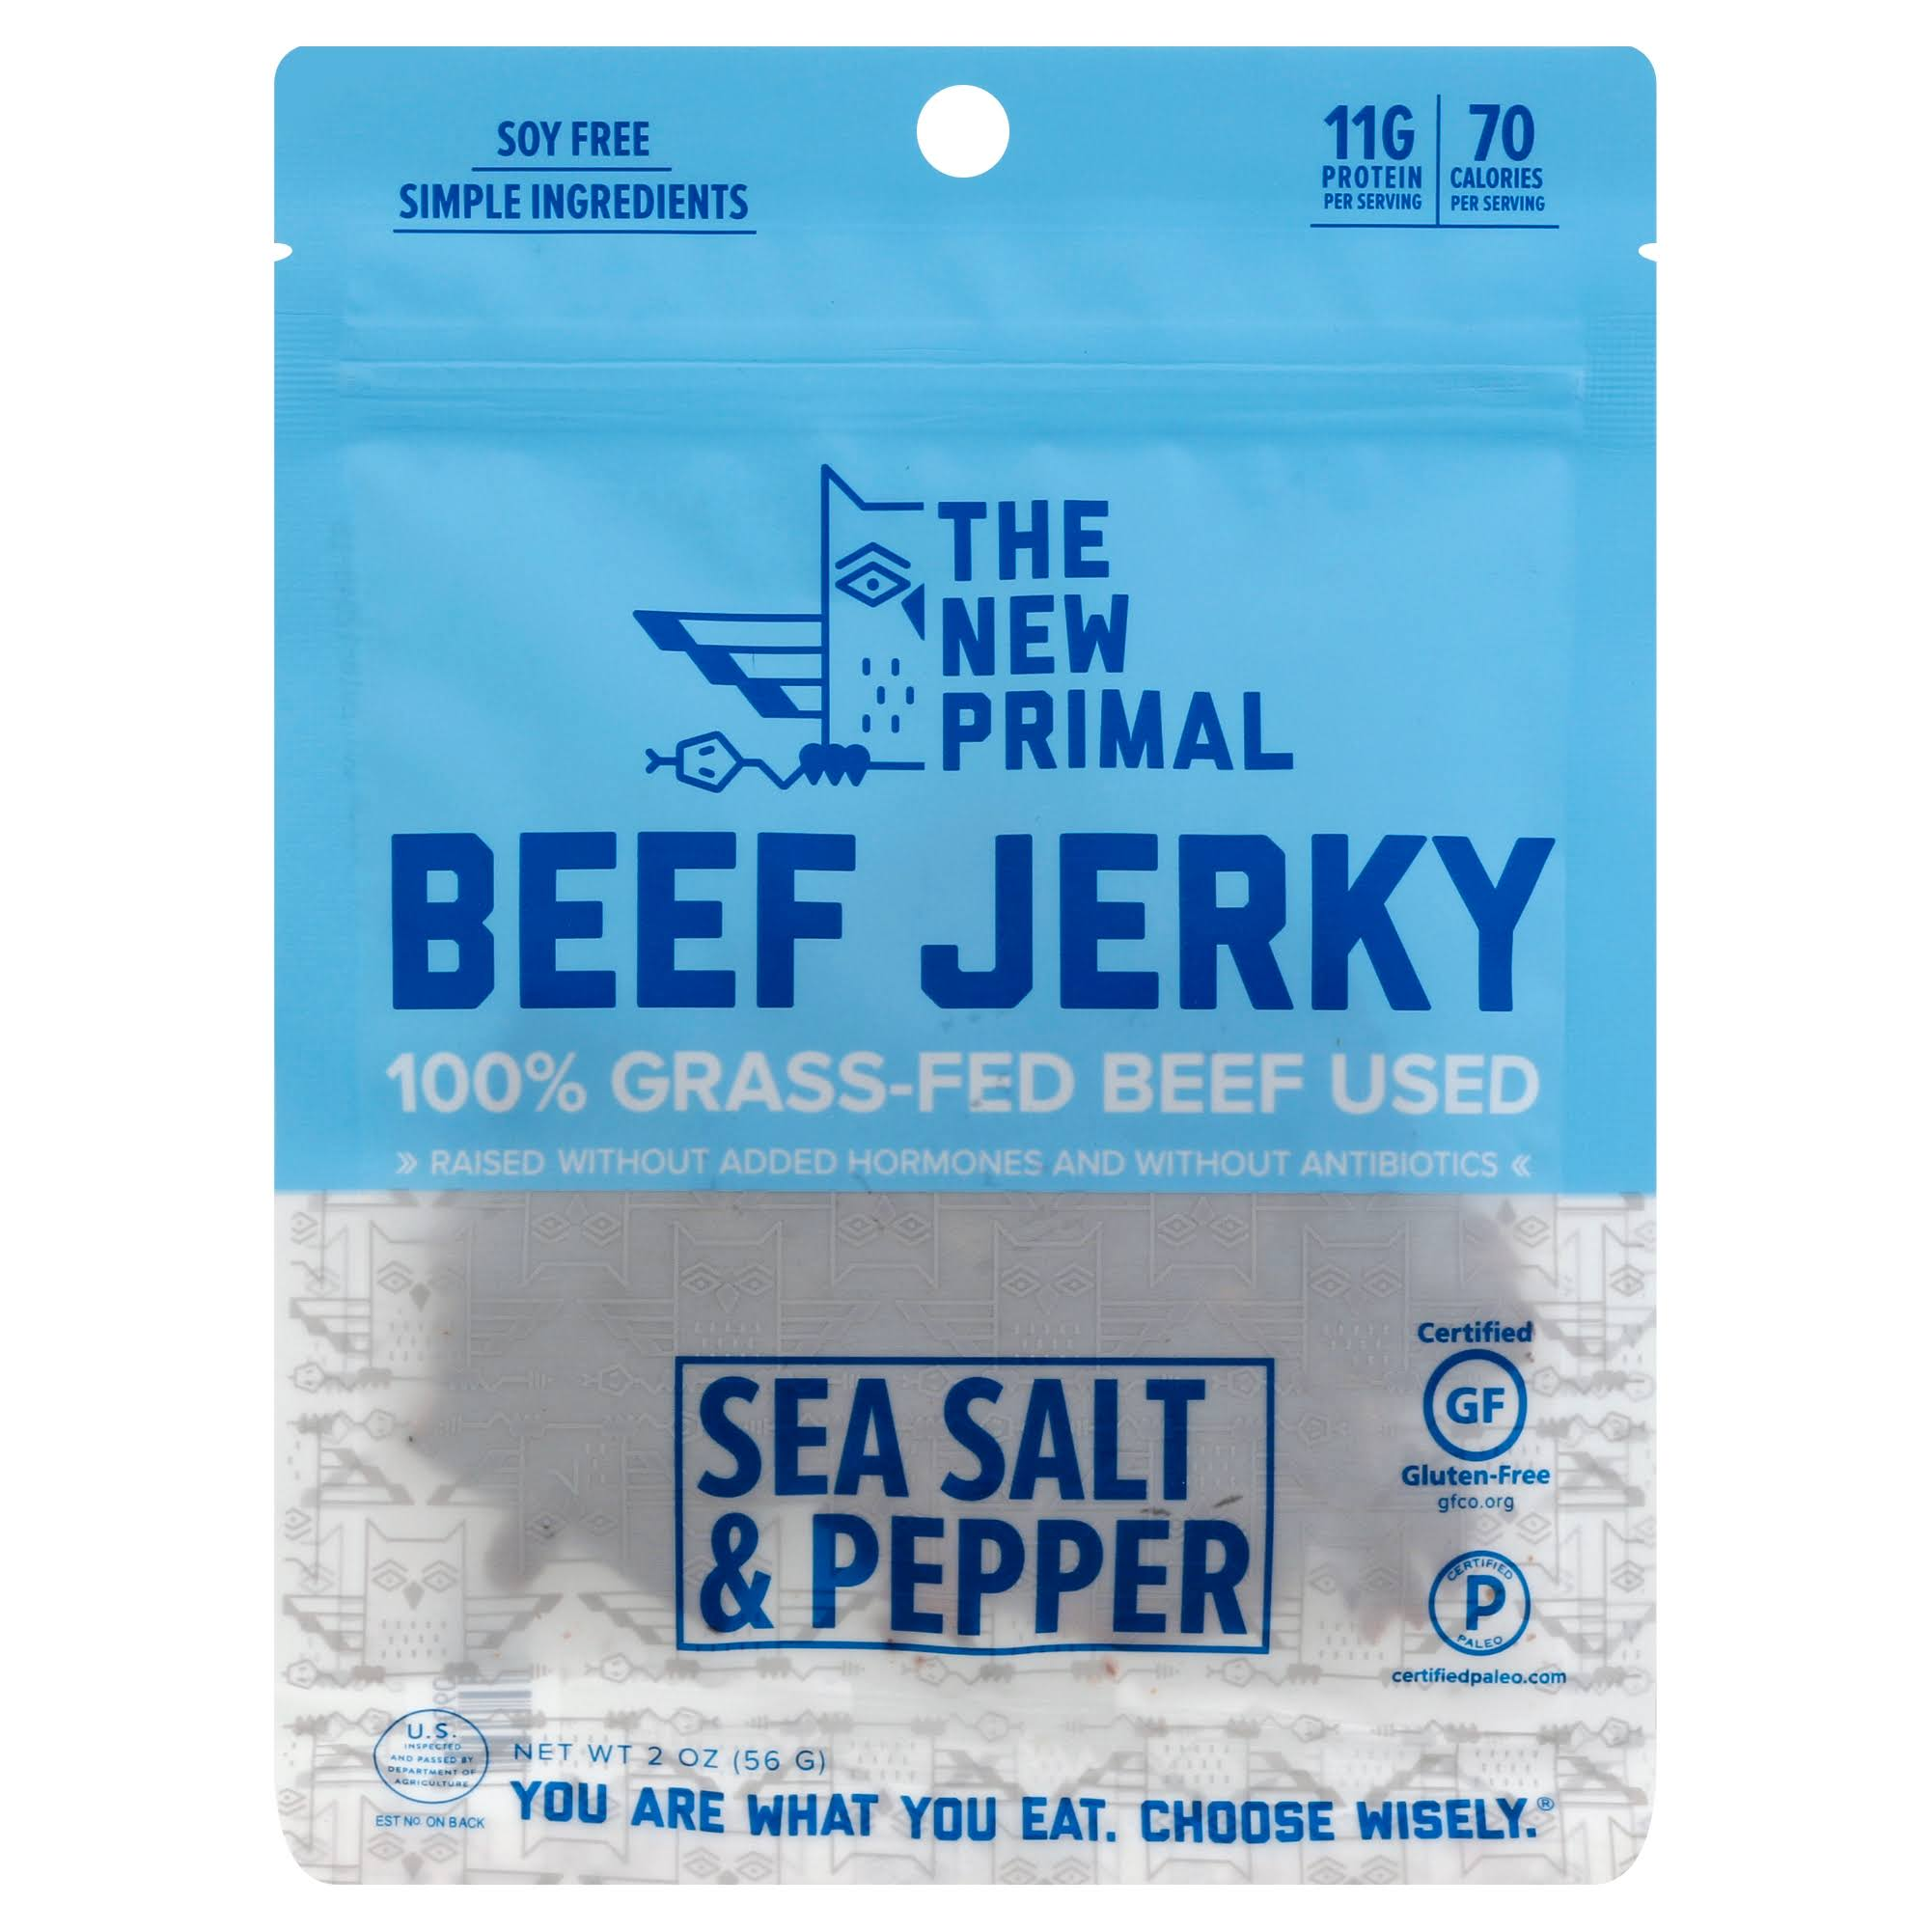 The New Primal Grass-Fed Beef Jerky - Smoke